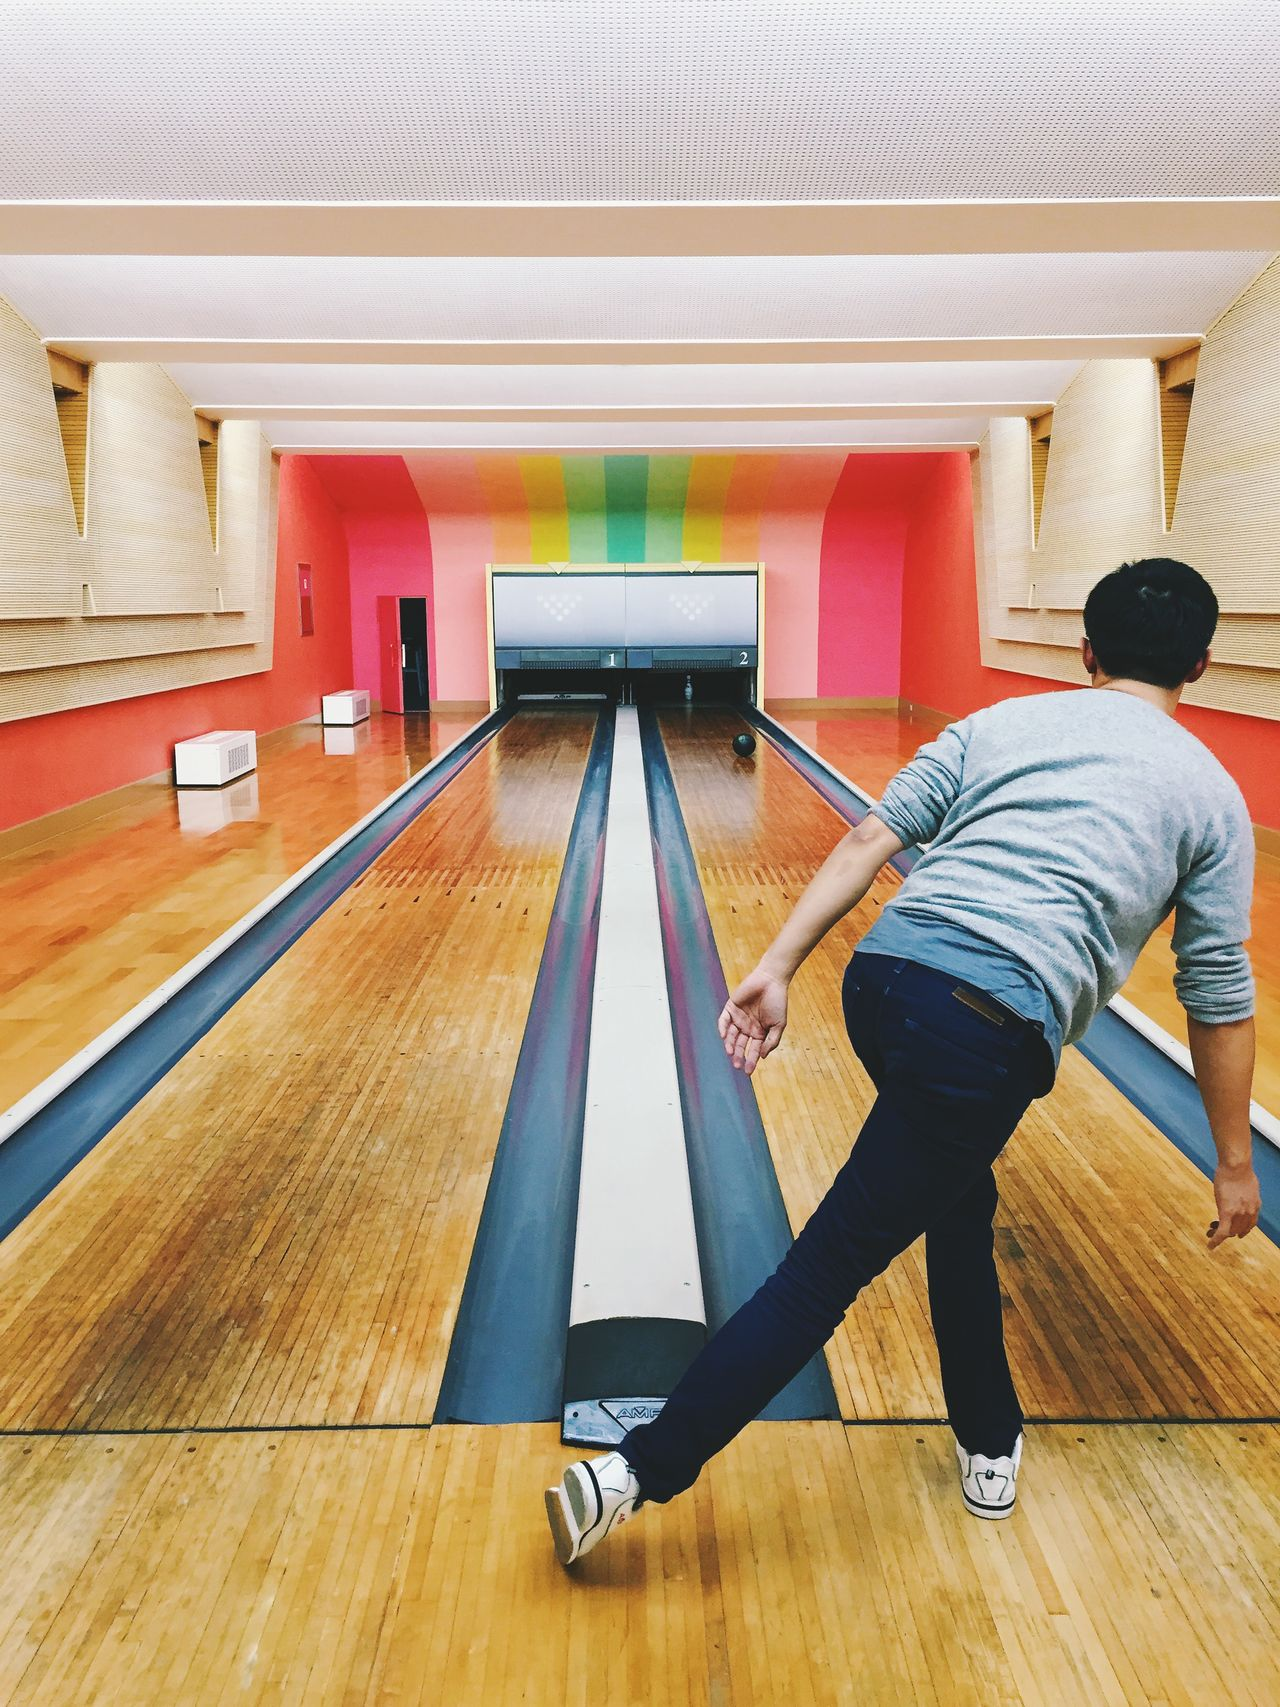 Bowling Bowling Alley Casual Clothing Day Flooring Leisure Activity Lifestyles Modern